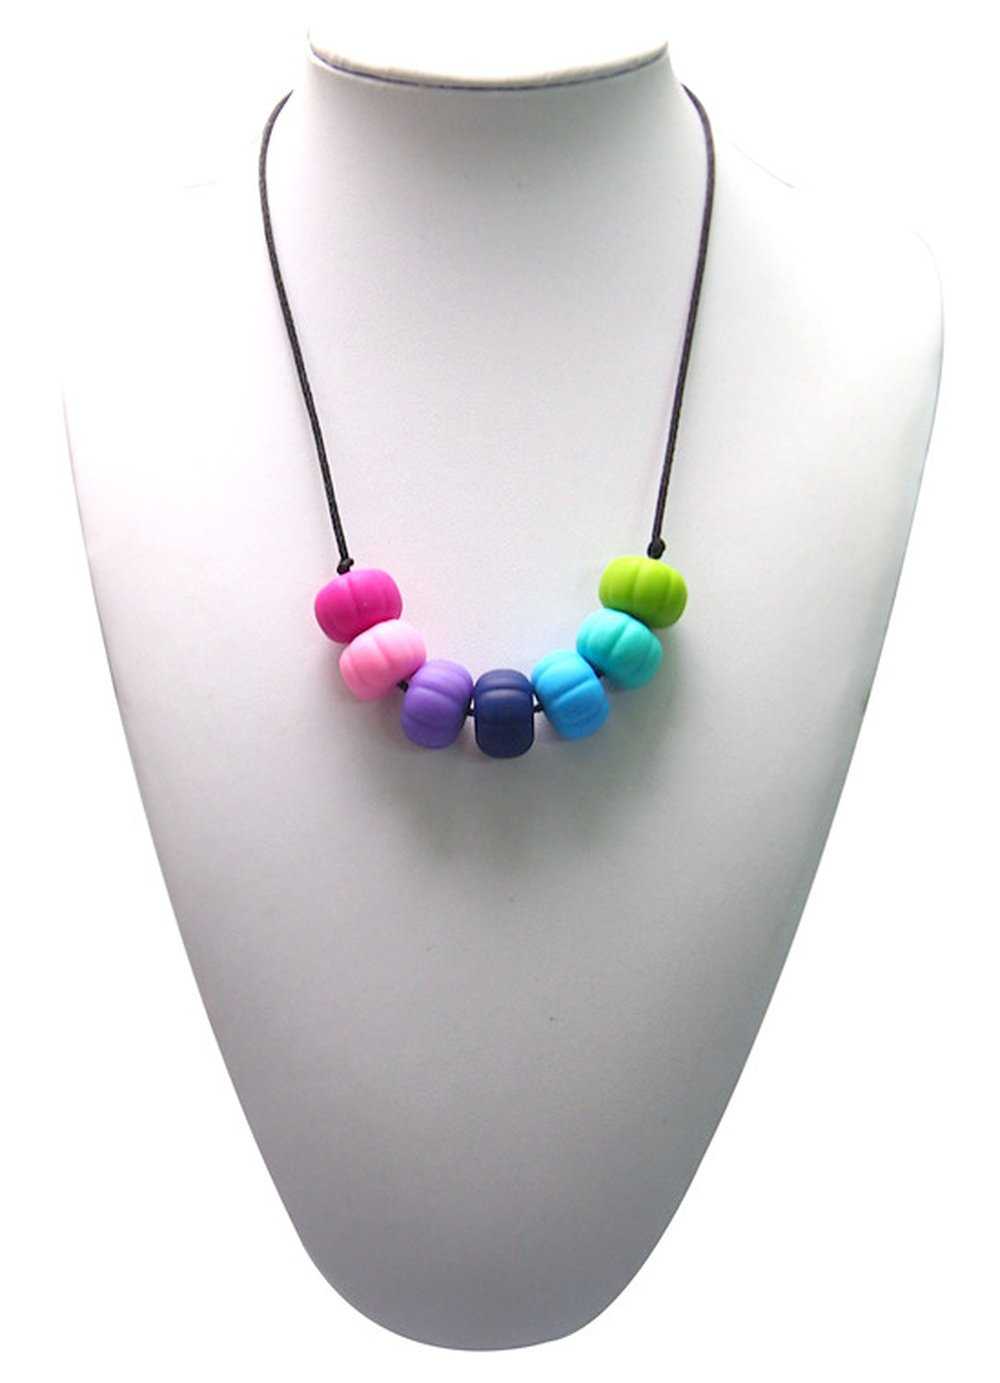 Silli Me Jewels: Bodacious Beads - Teething Nursing Necklace with Multi-Colored Beads for Mom to Wear and Baby to Chew by Silli Me   B00L726M34